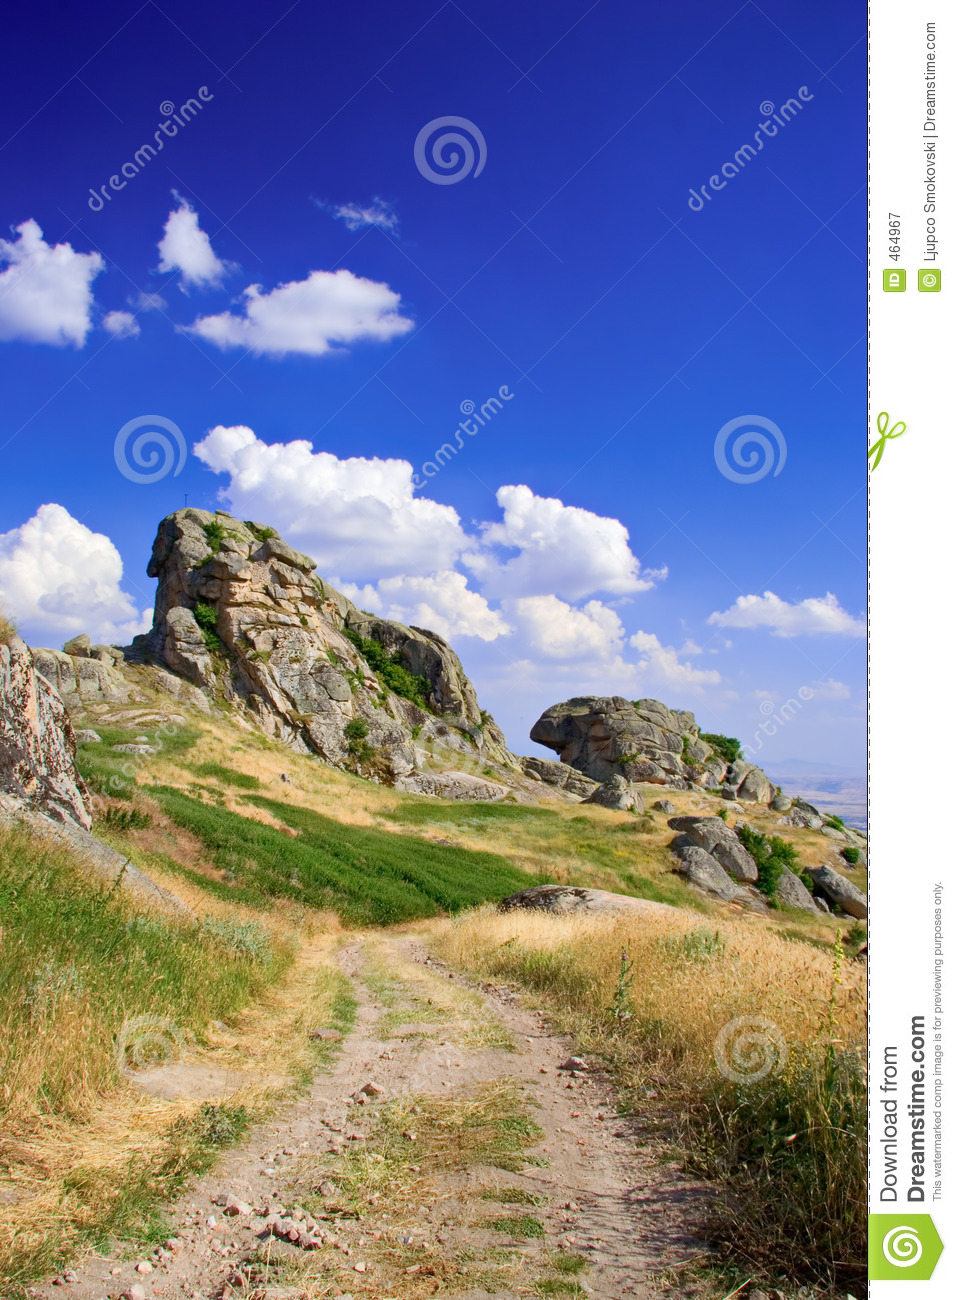 Download Gravel road and rocks stock image. Image of blue, dirt - 464967